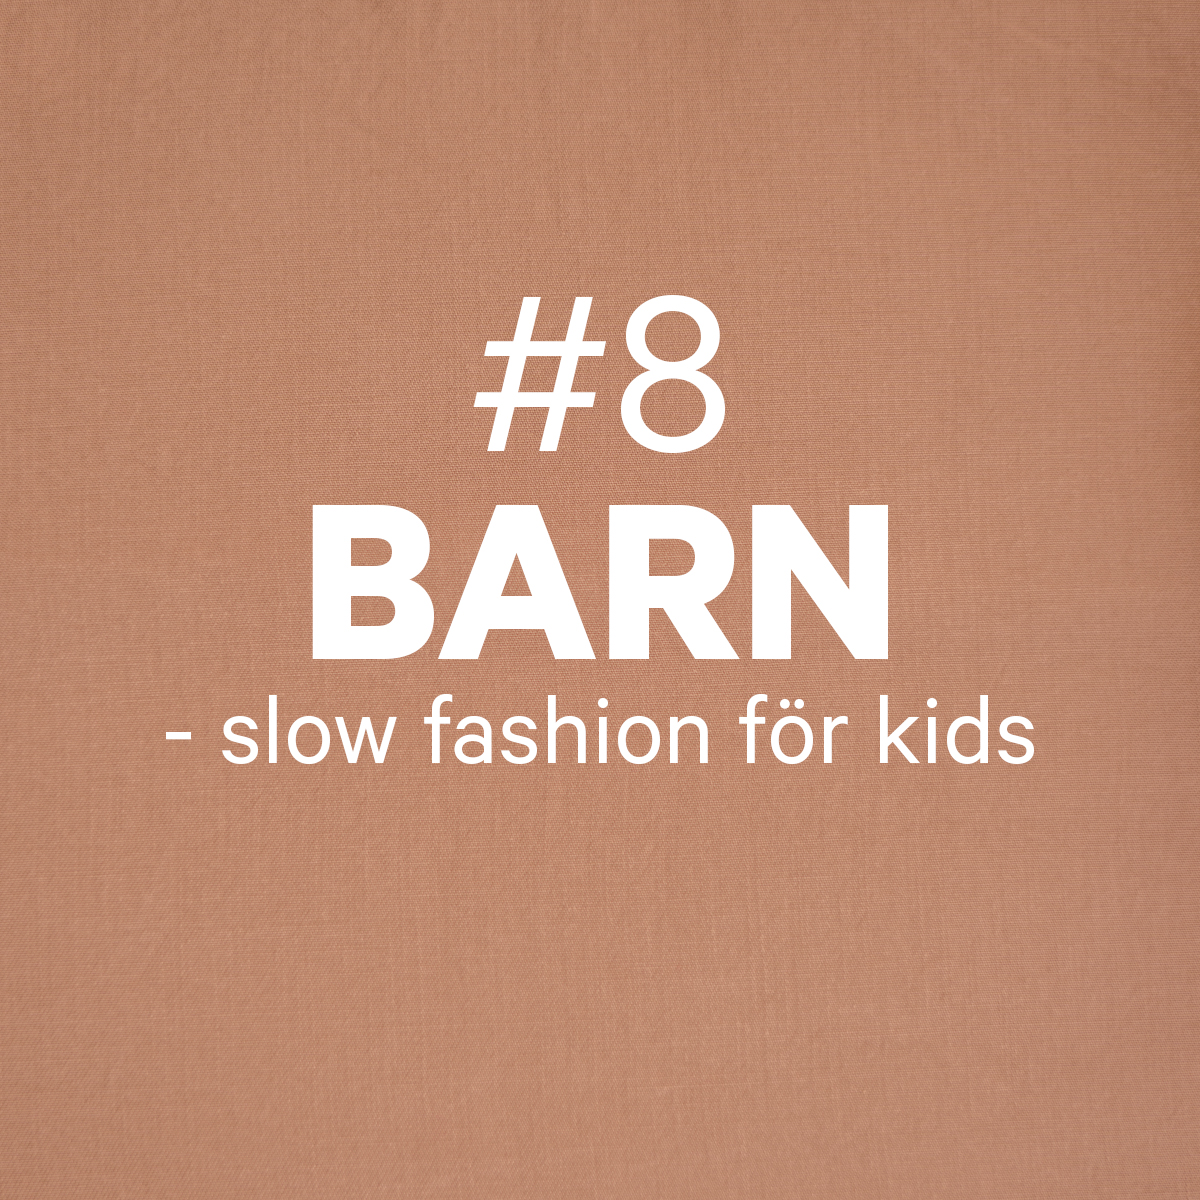 8-barn-slow fashion for kids.jpg